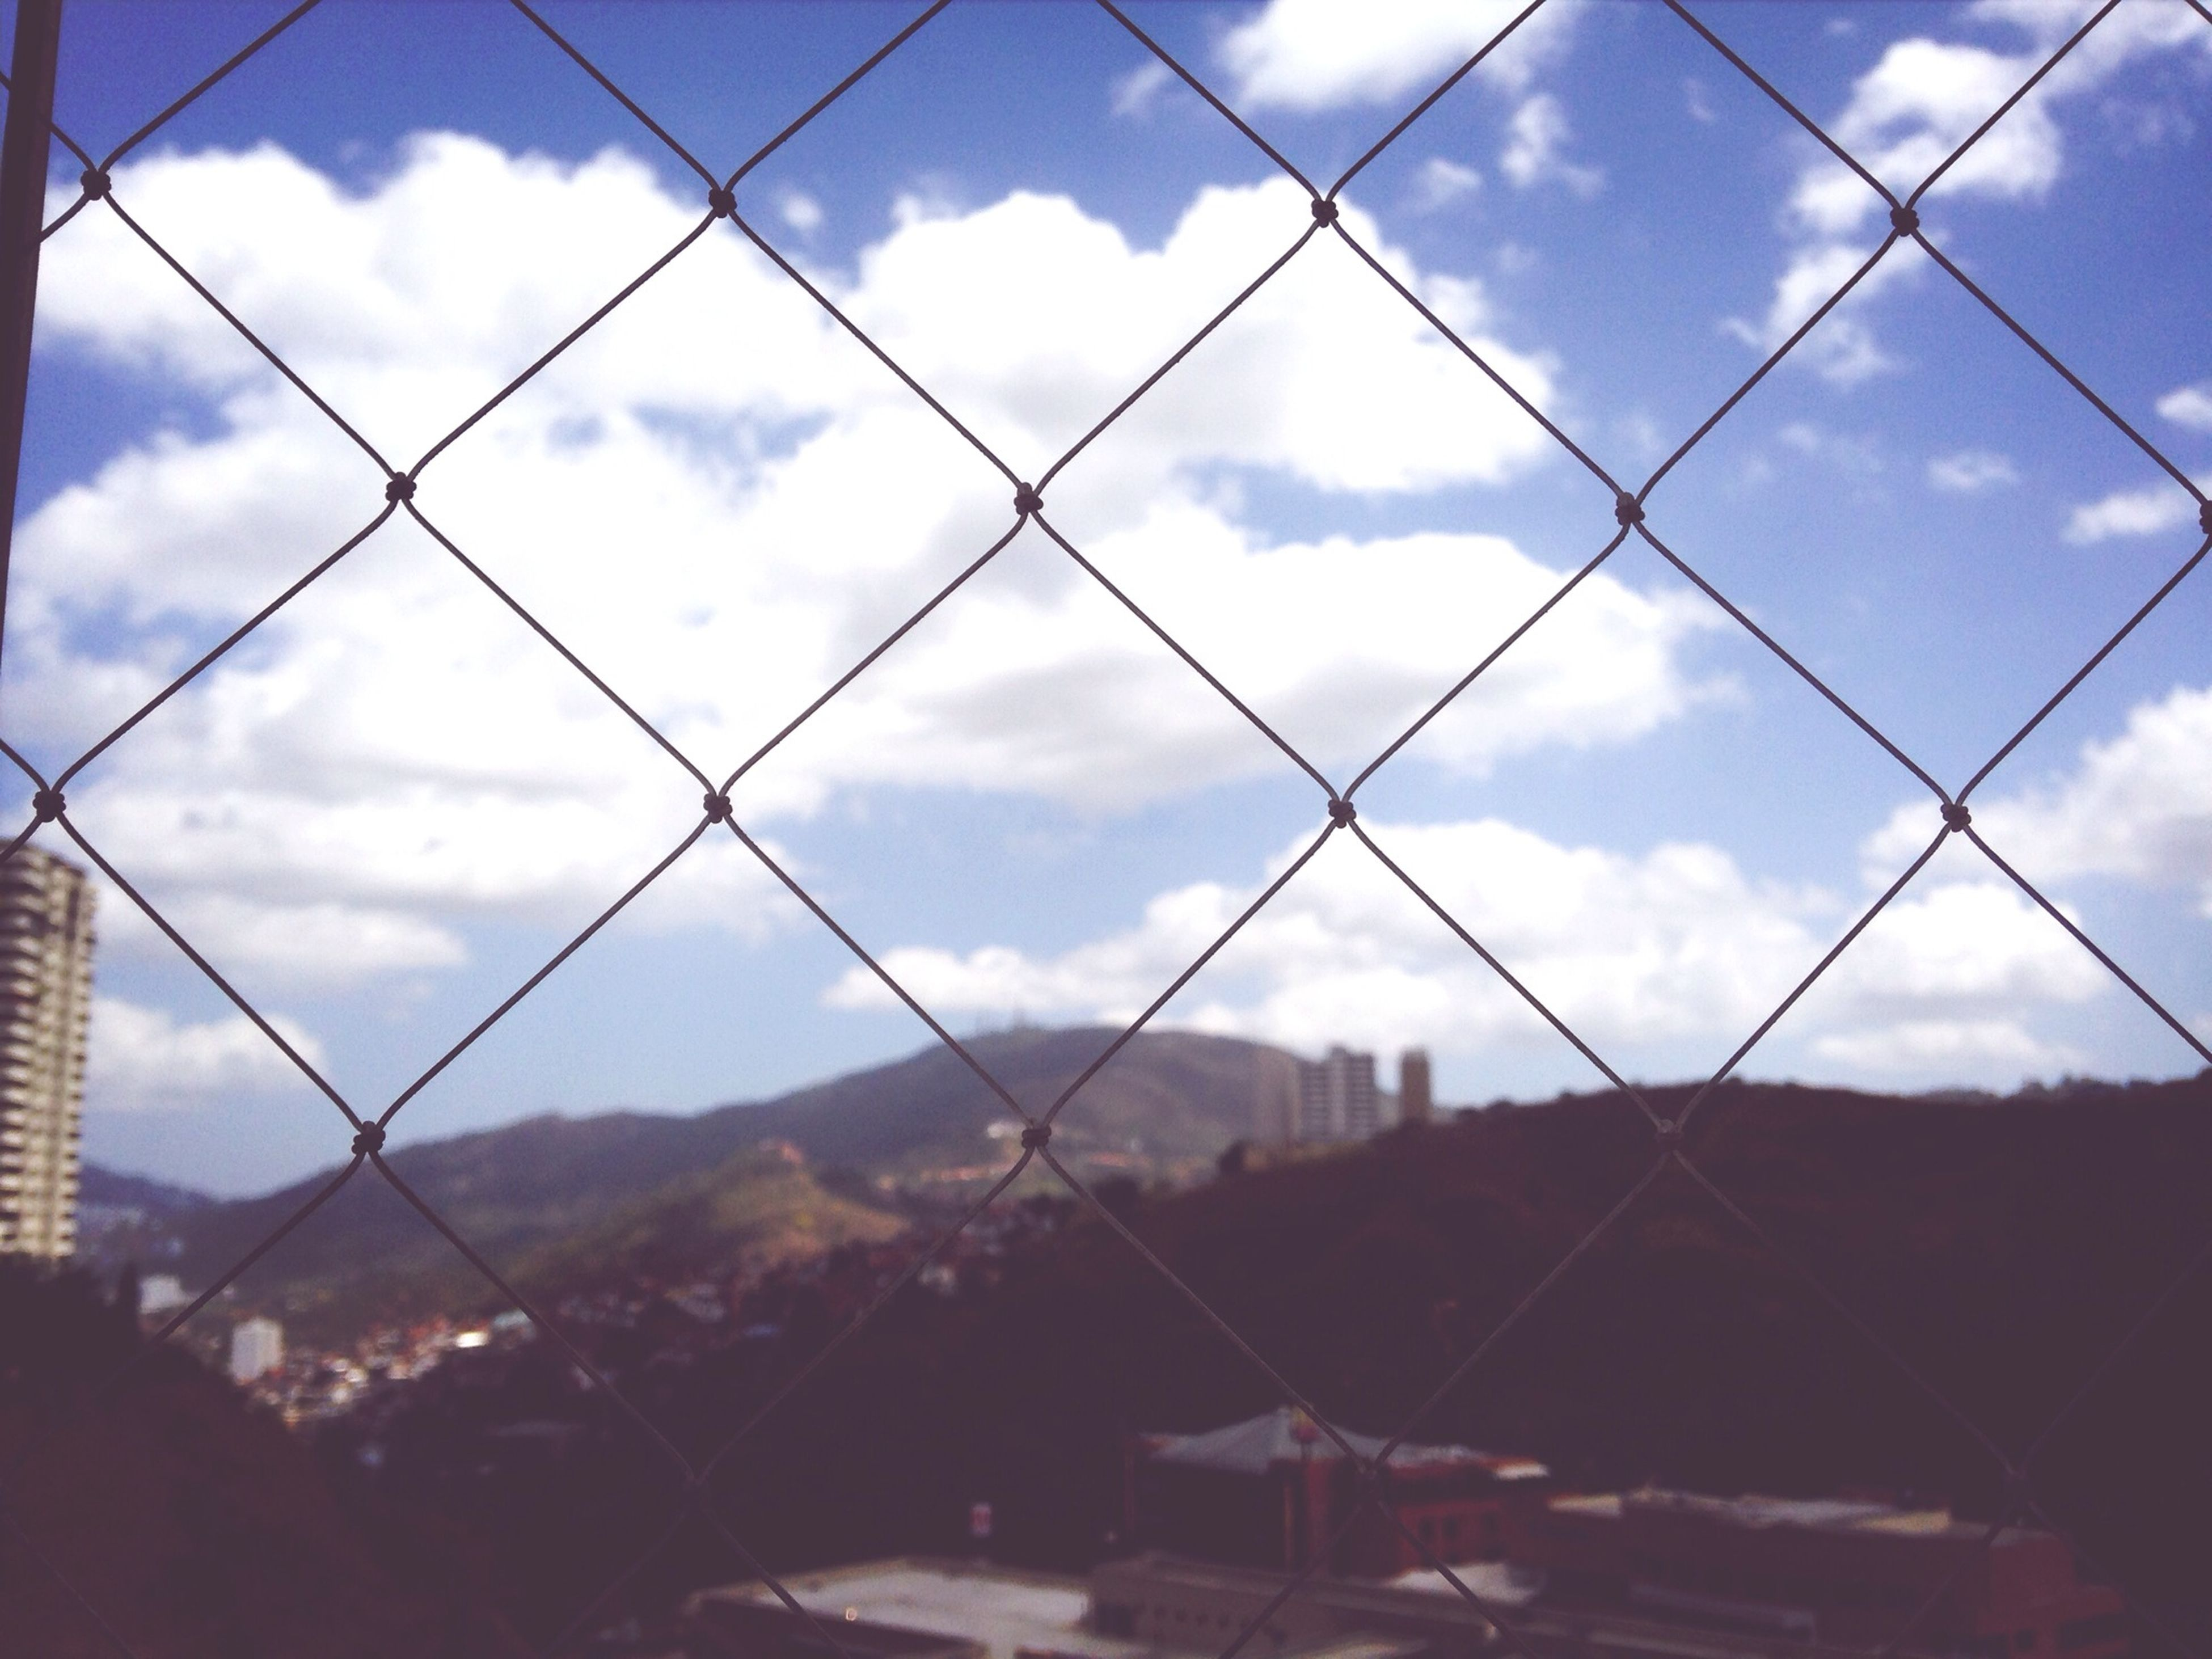 sky, cloud - sky, cloudy, cloud, built structure, architecture, building exterior, chainlink fence, fence, city, day, no people, landscape, cityscape, metal, outdoors, overcast, nature, weather, protection